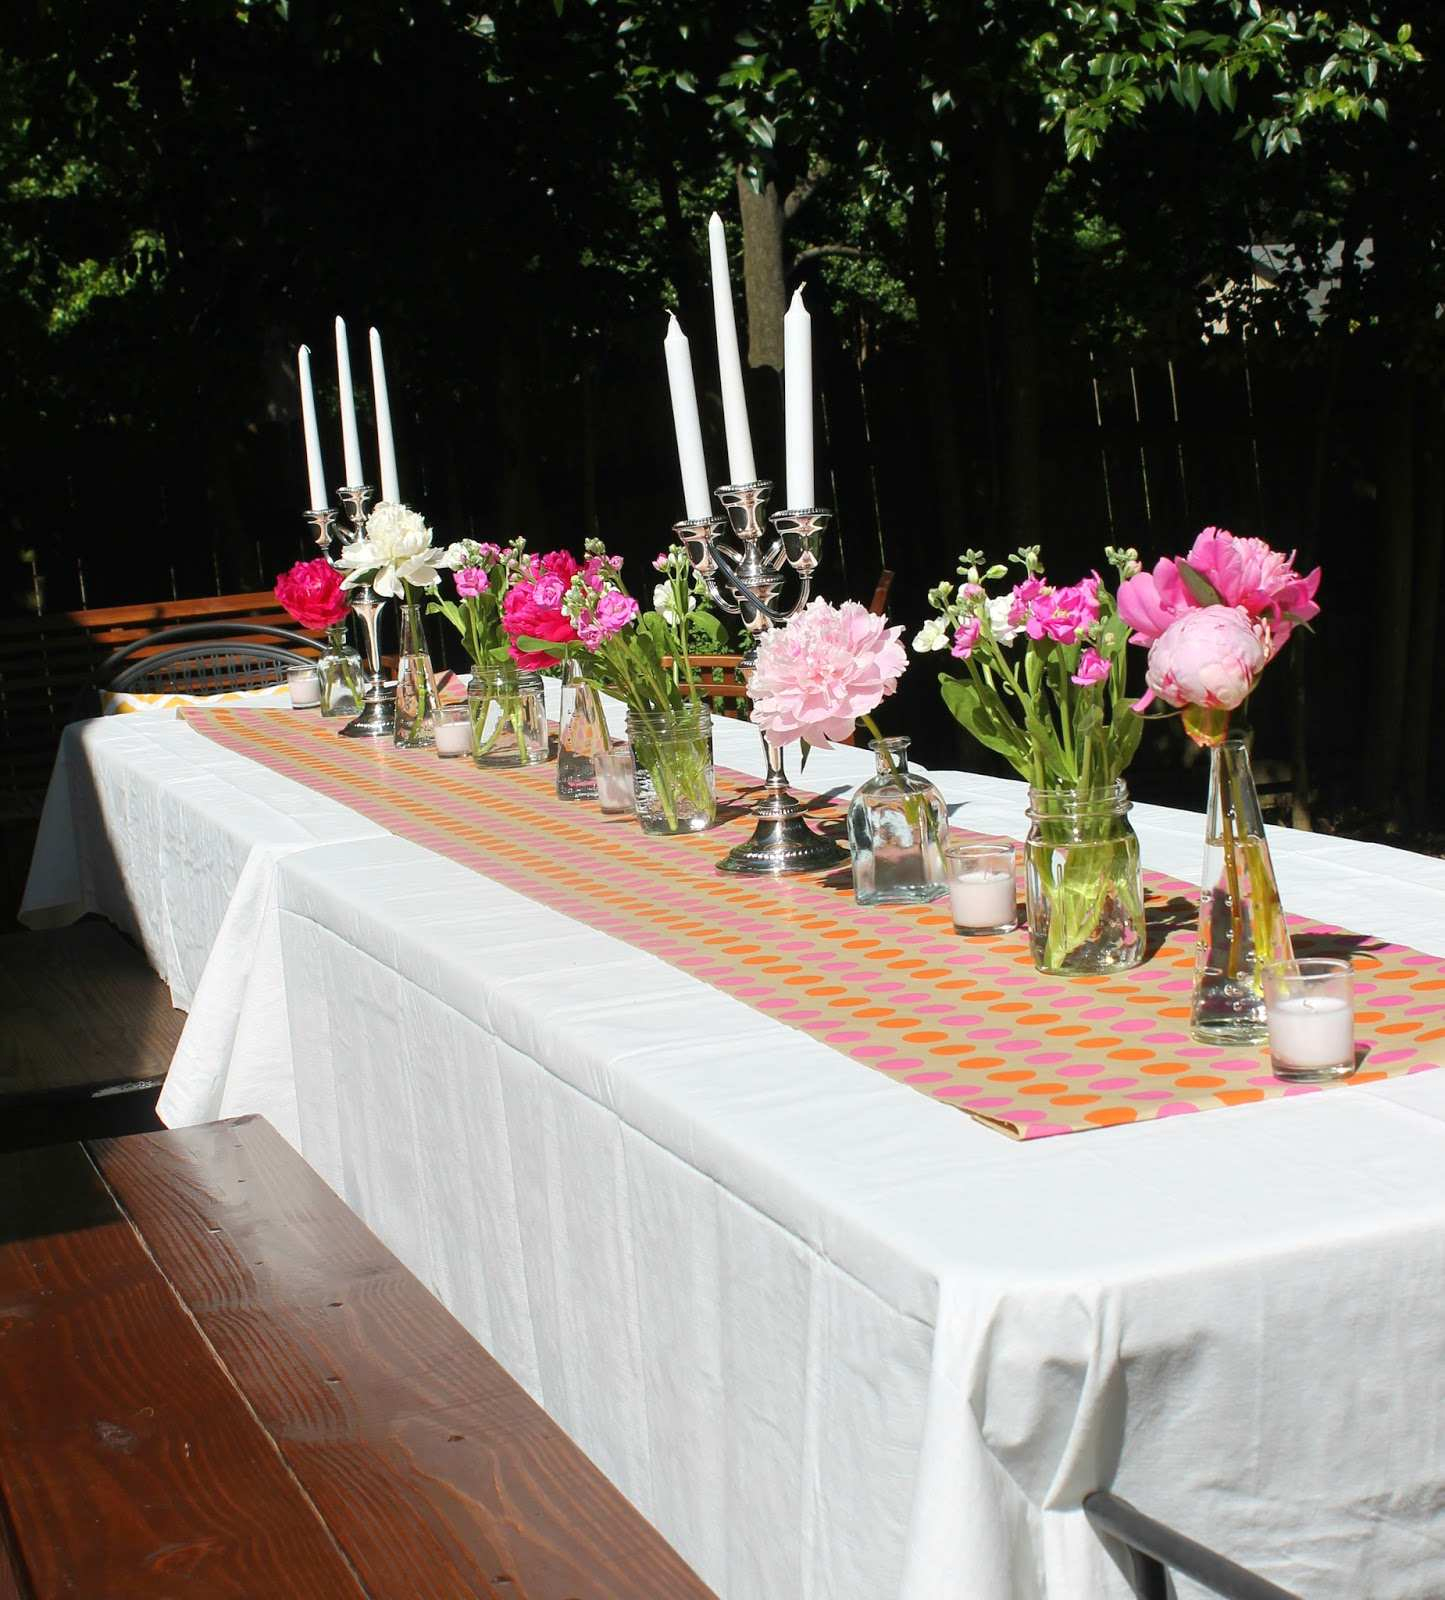 Peacock Wedding Décor that Will Blow Your Mind Attractive Outdoor Patio Table Centerpiece Ideas From Outdoor